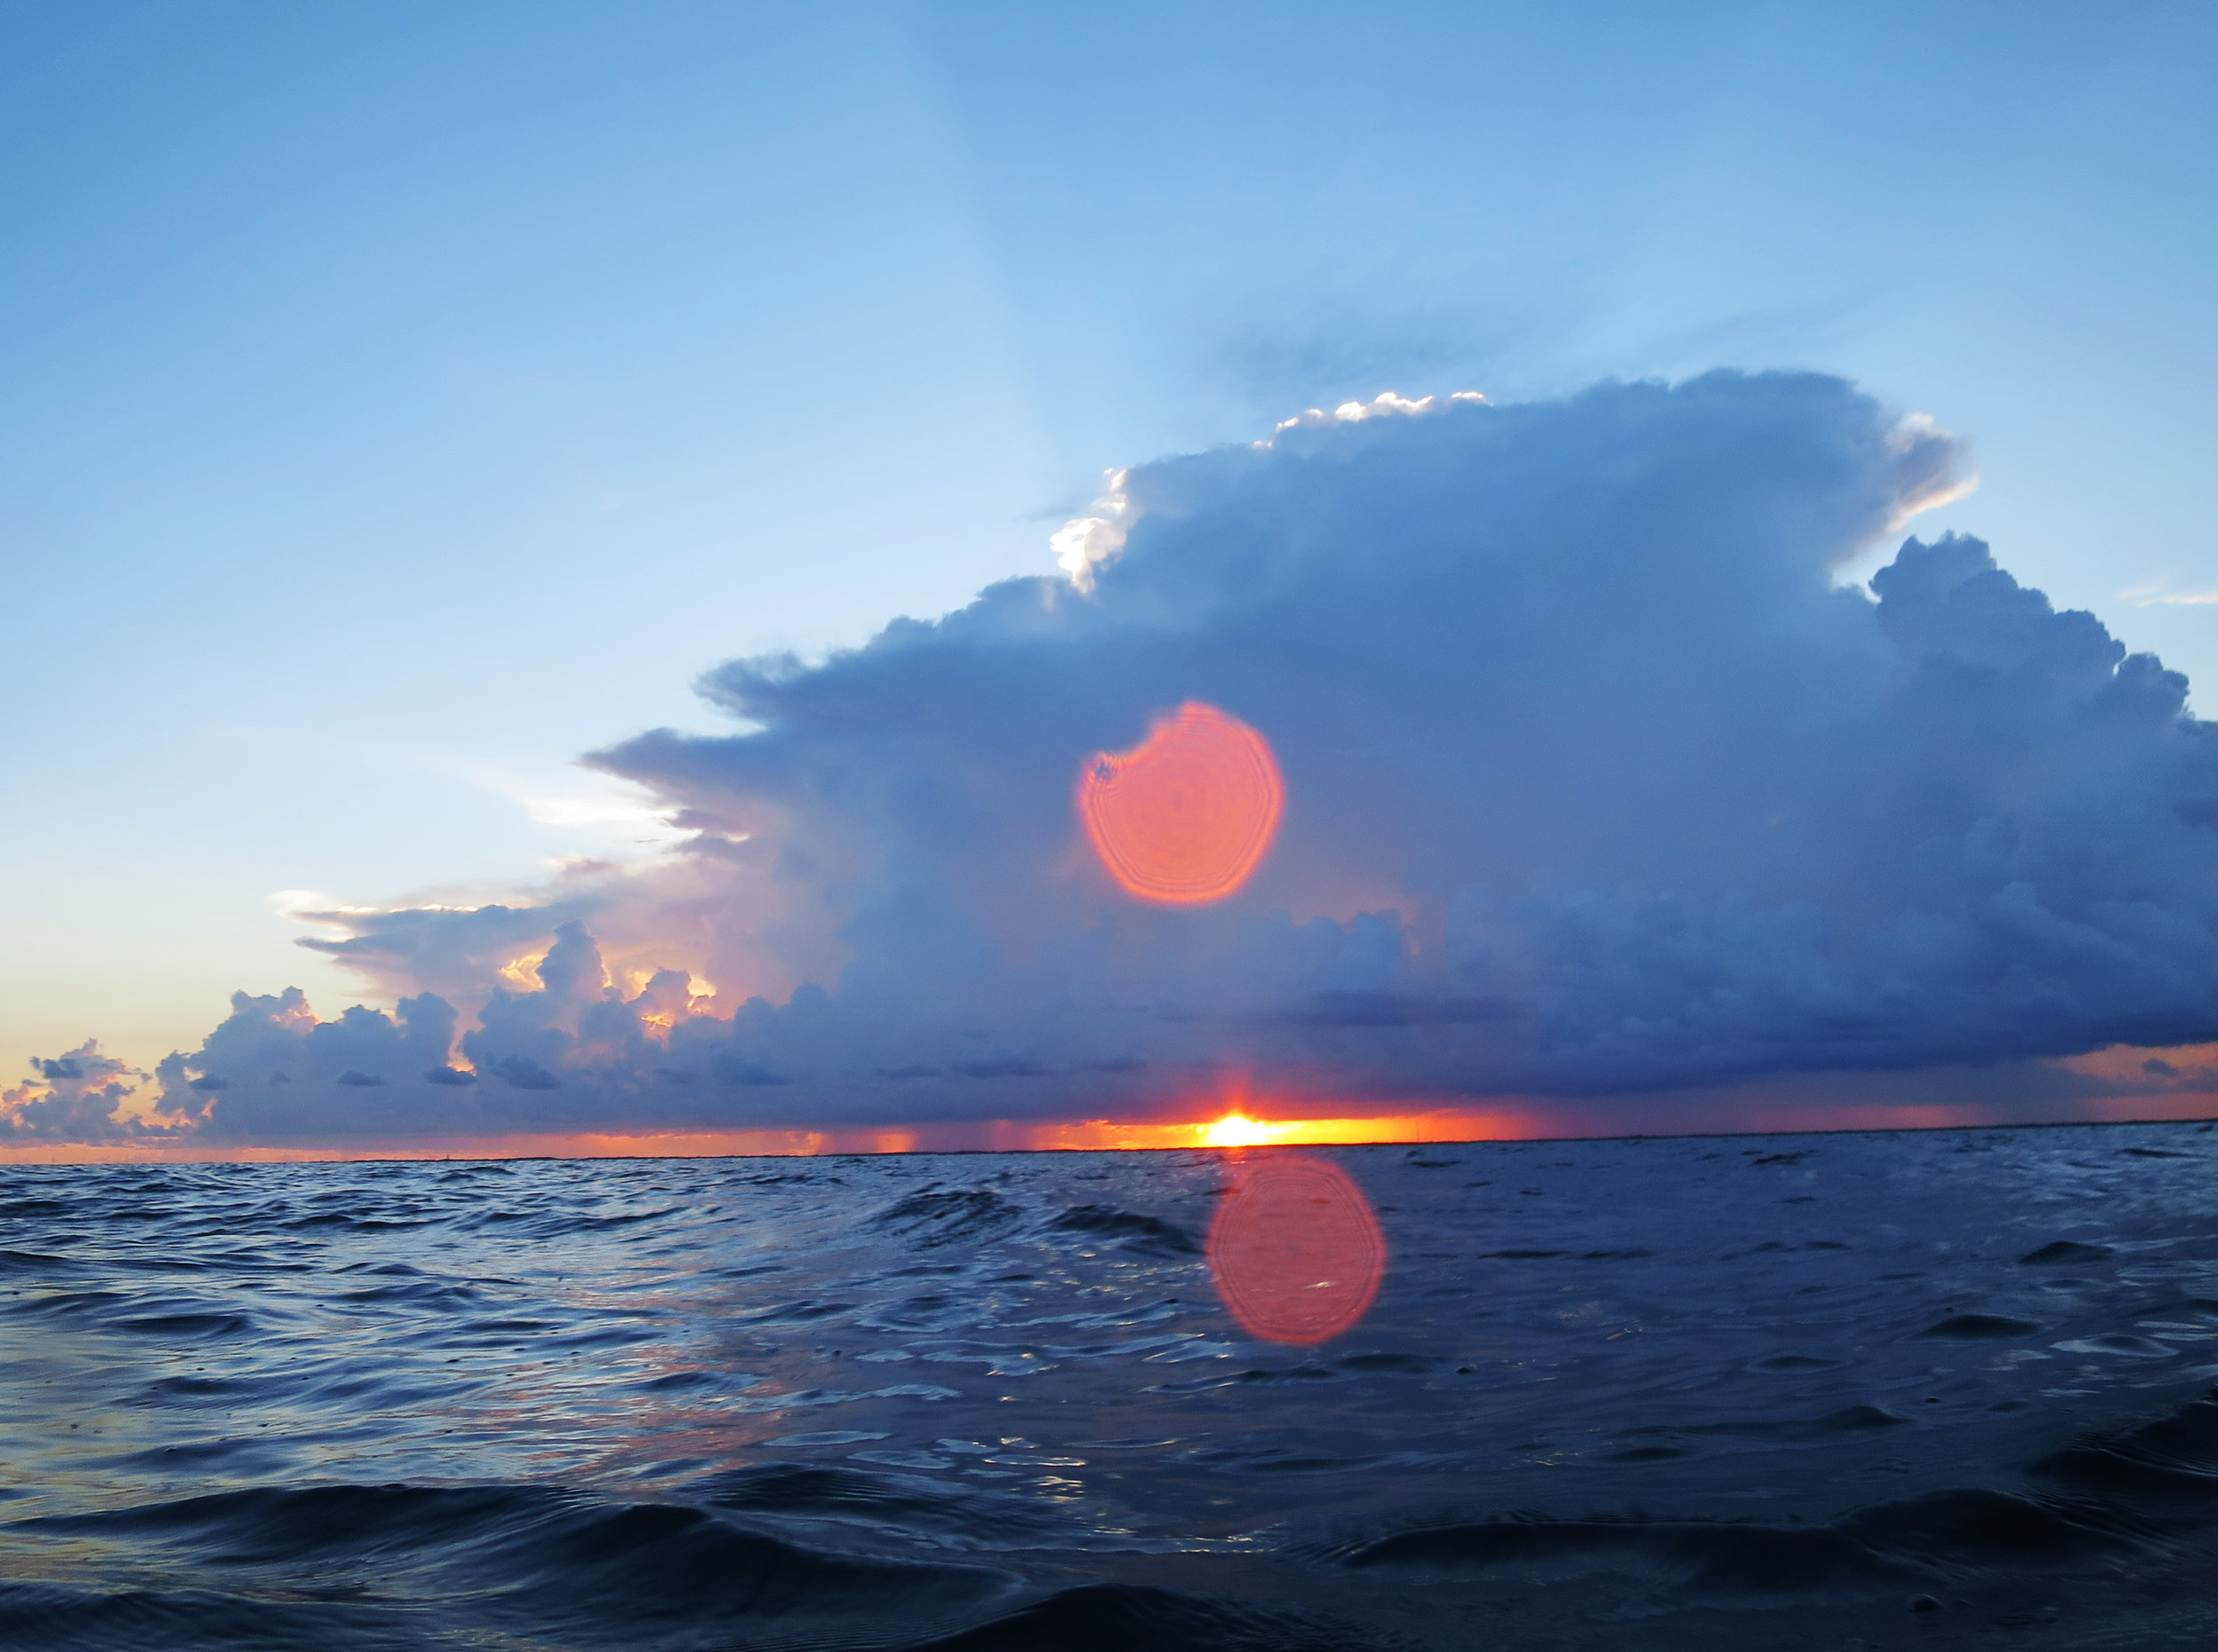 The sun sets over John Pennekamp Coral Reef State Park in Key Largo, FL as we wait for coral spawning to begin.